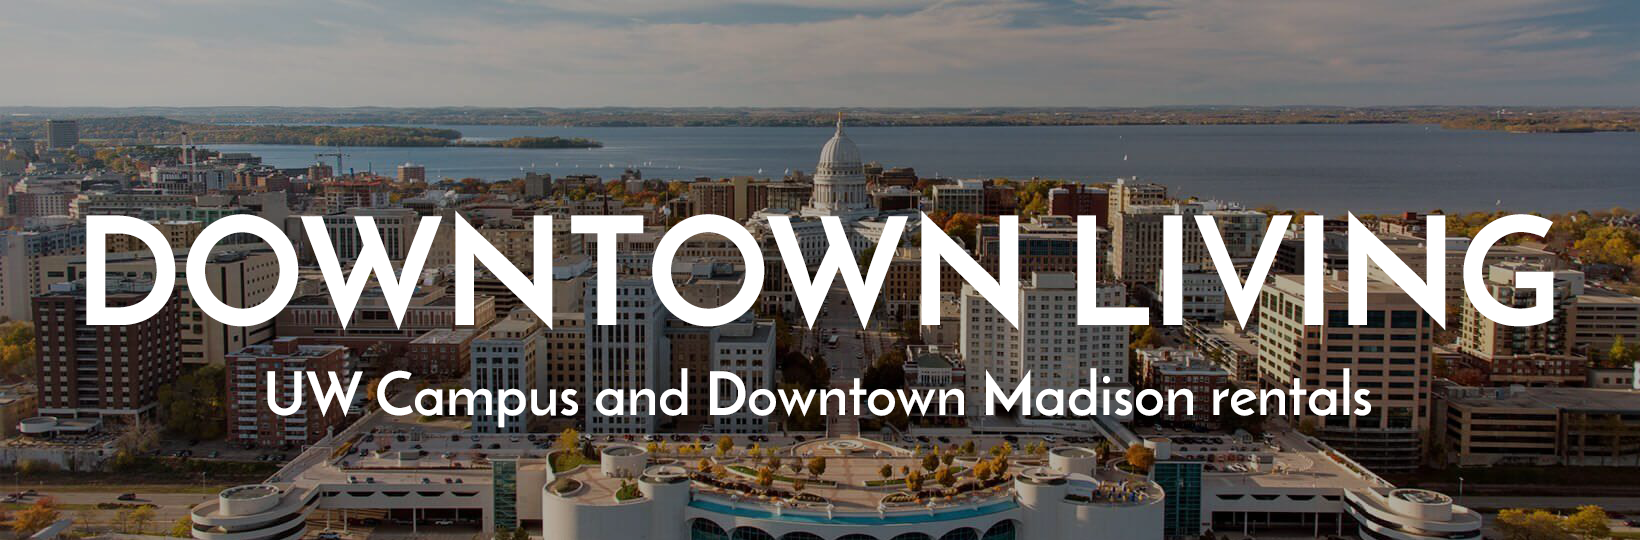 Downtown Living - UW Campus and Downtown Madison rentals and parking